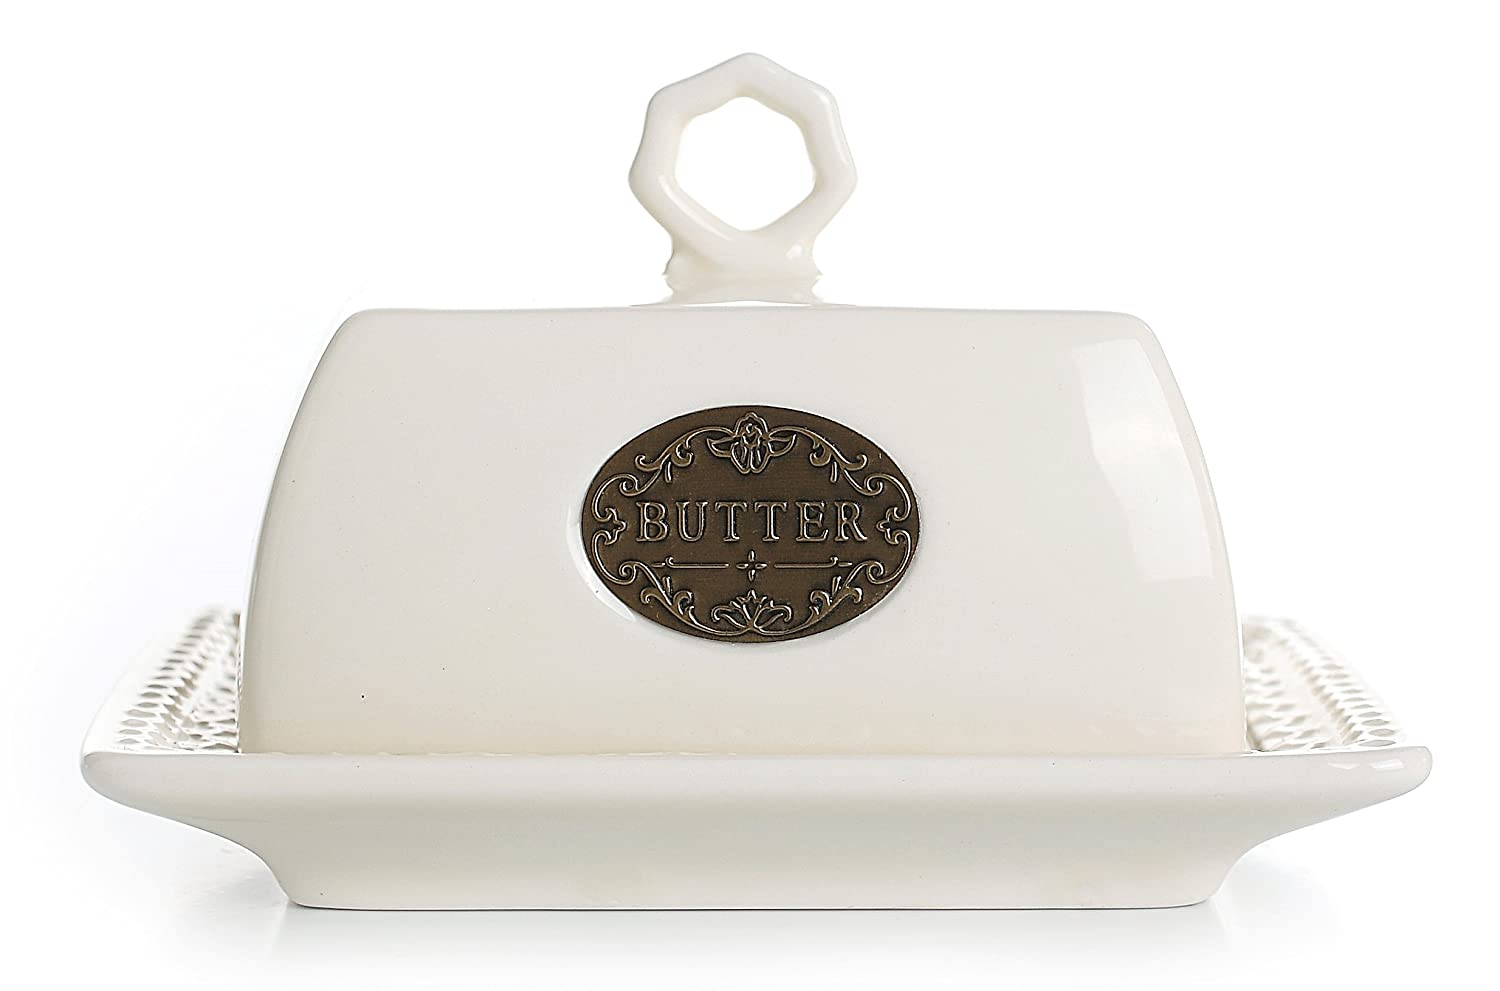 Small Ceramic Butter Dish with Lid, Vintage Home Decor Christmas Table Decorations LA JOLIE MUSE